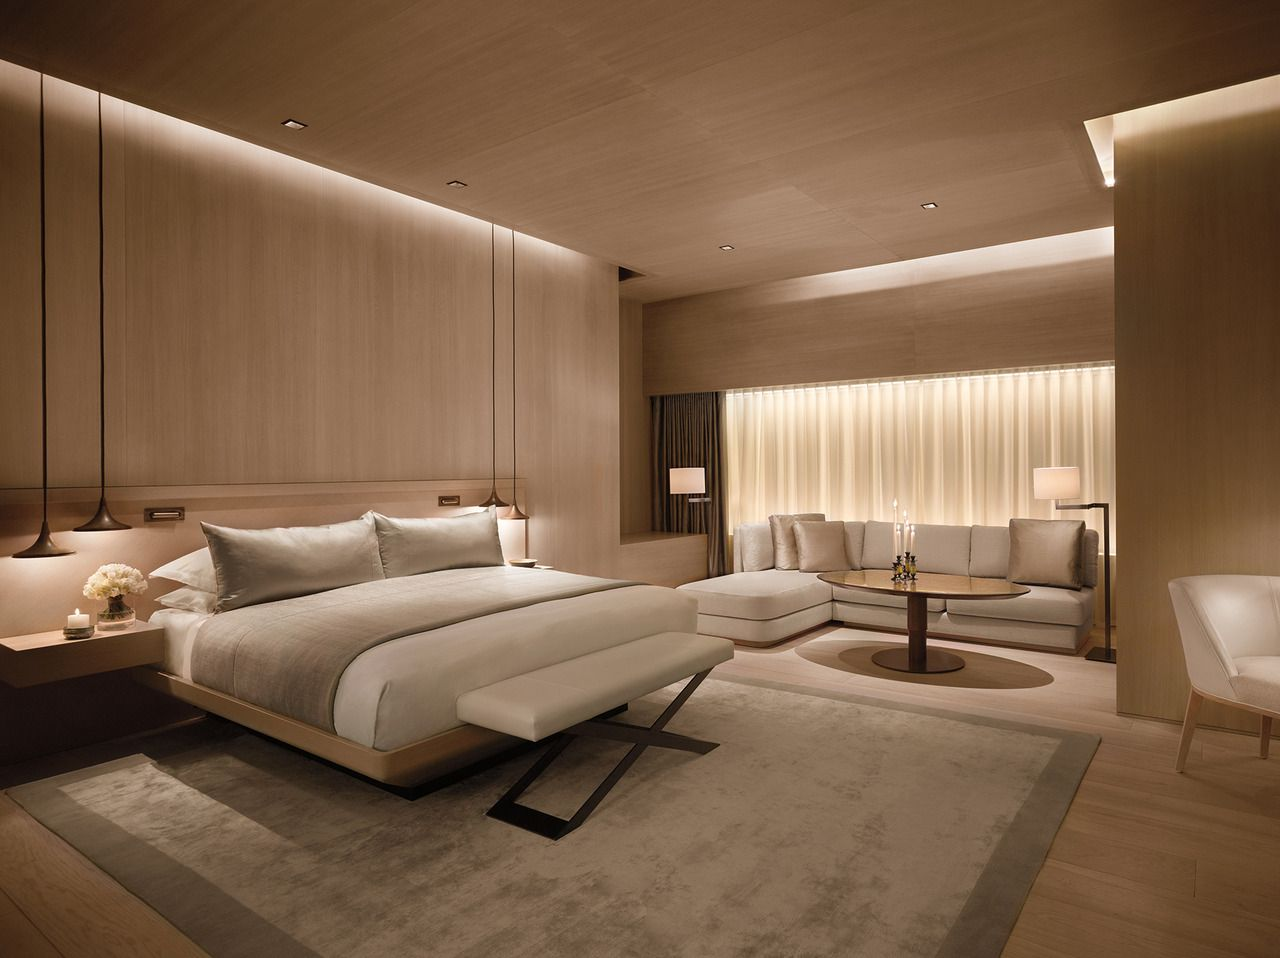 Master bedroom false ceiling  The London EDITION  Humaidus Room  Pinterest  Galleries Bedrooms